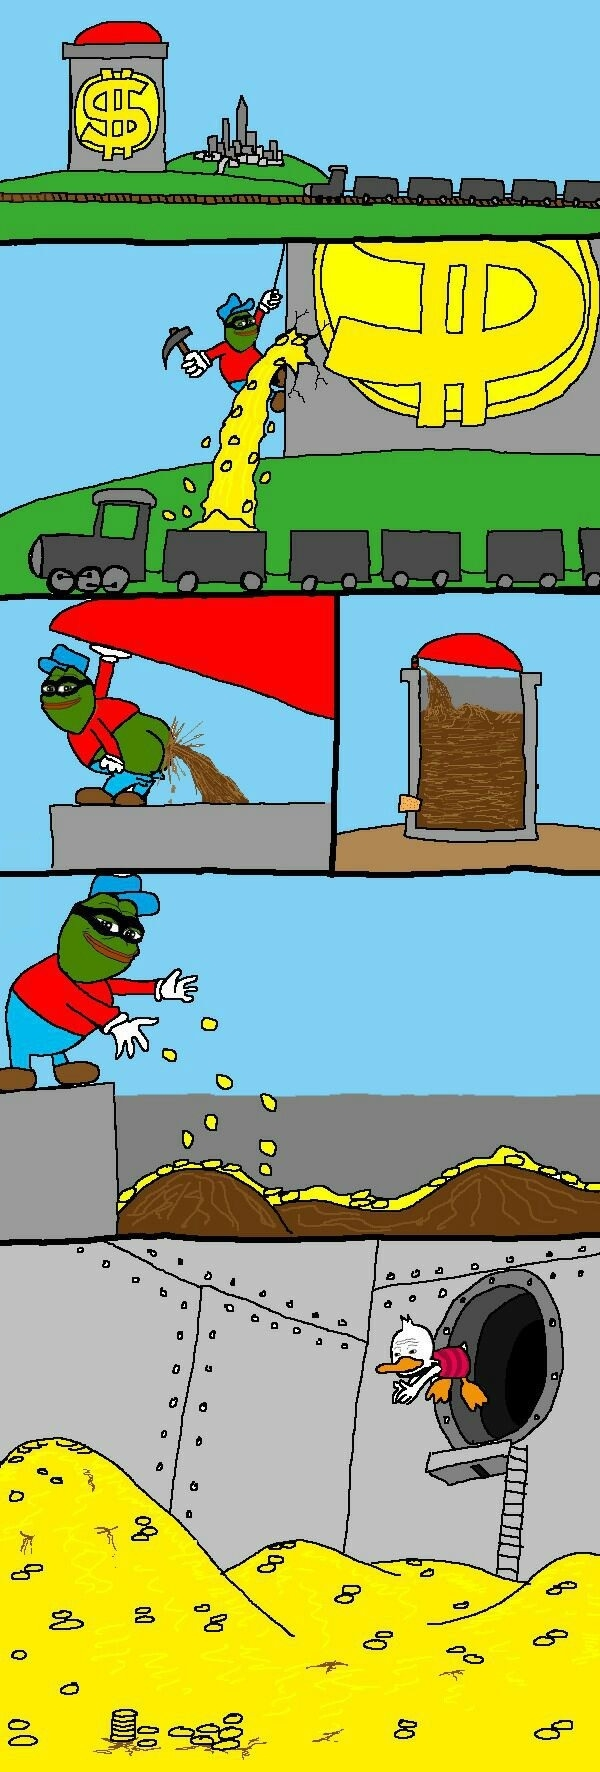 Y u do dis pepe?